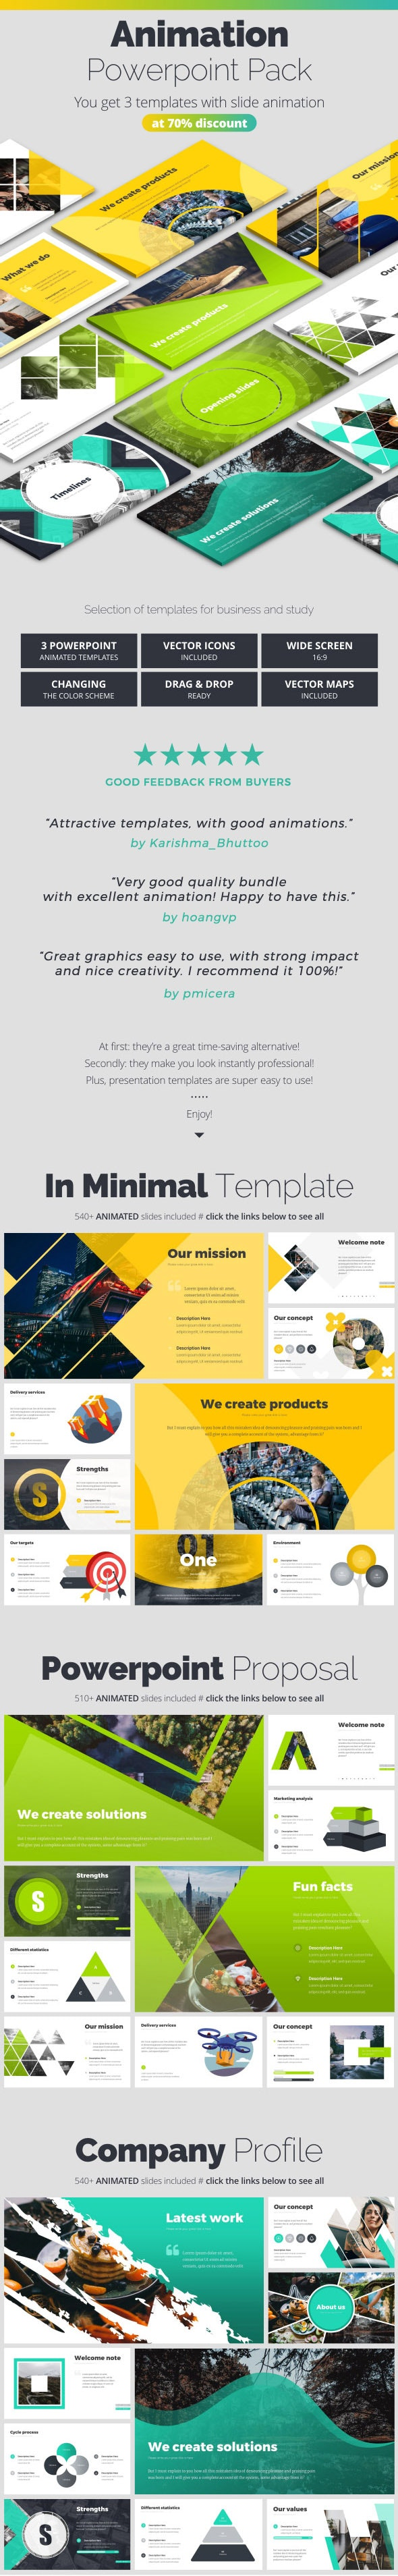 Pitch Deck Animated Infographics - Pitch Deck PowerPoint Templates